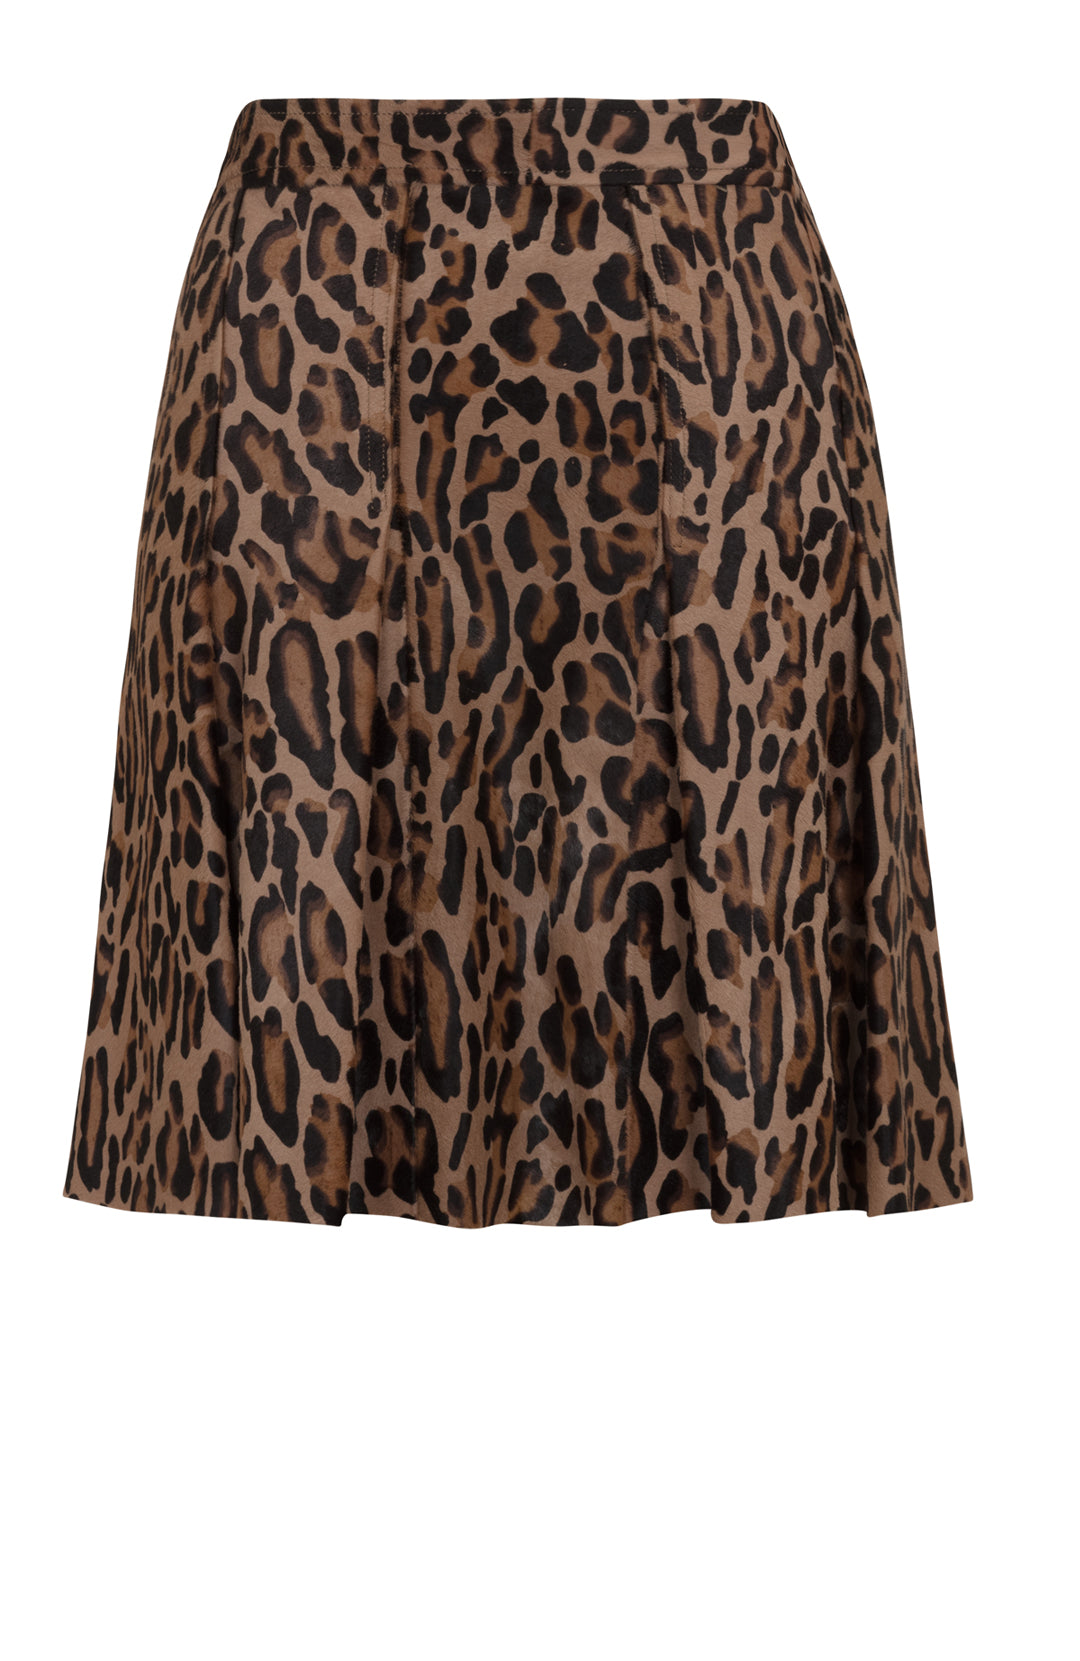 CALF HAIR PLEAT SKIRT